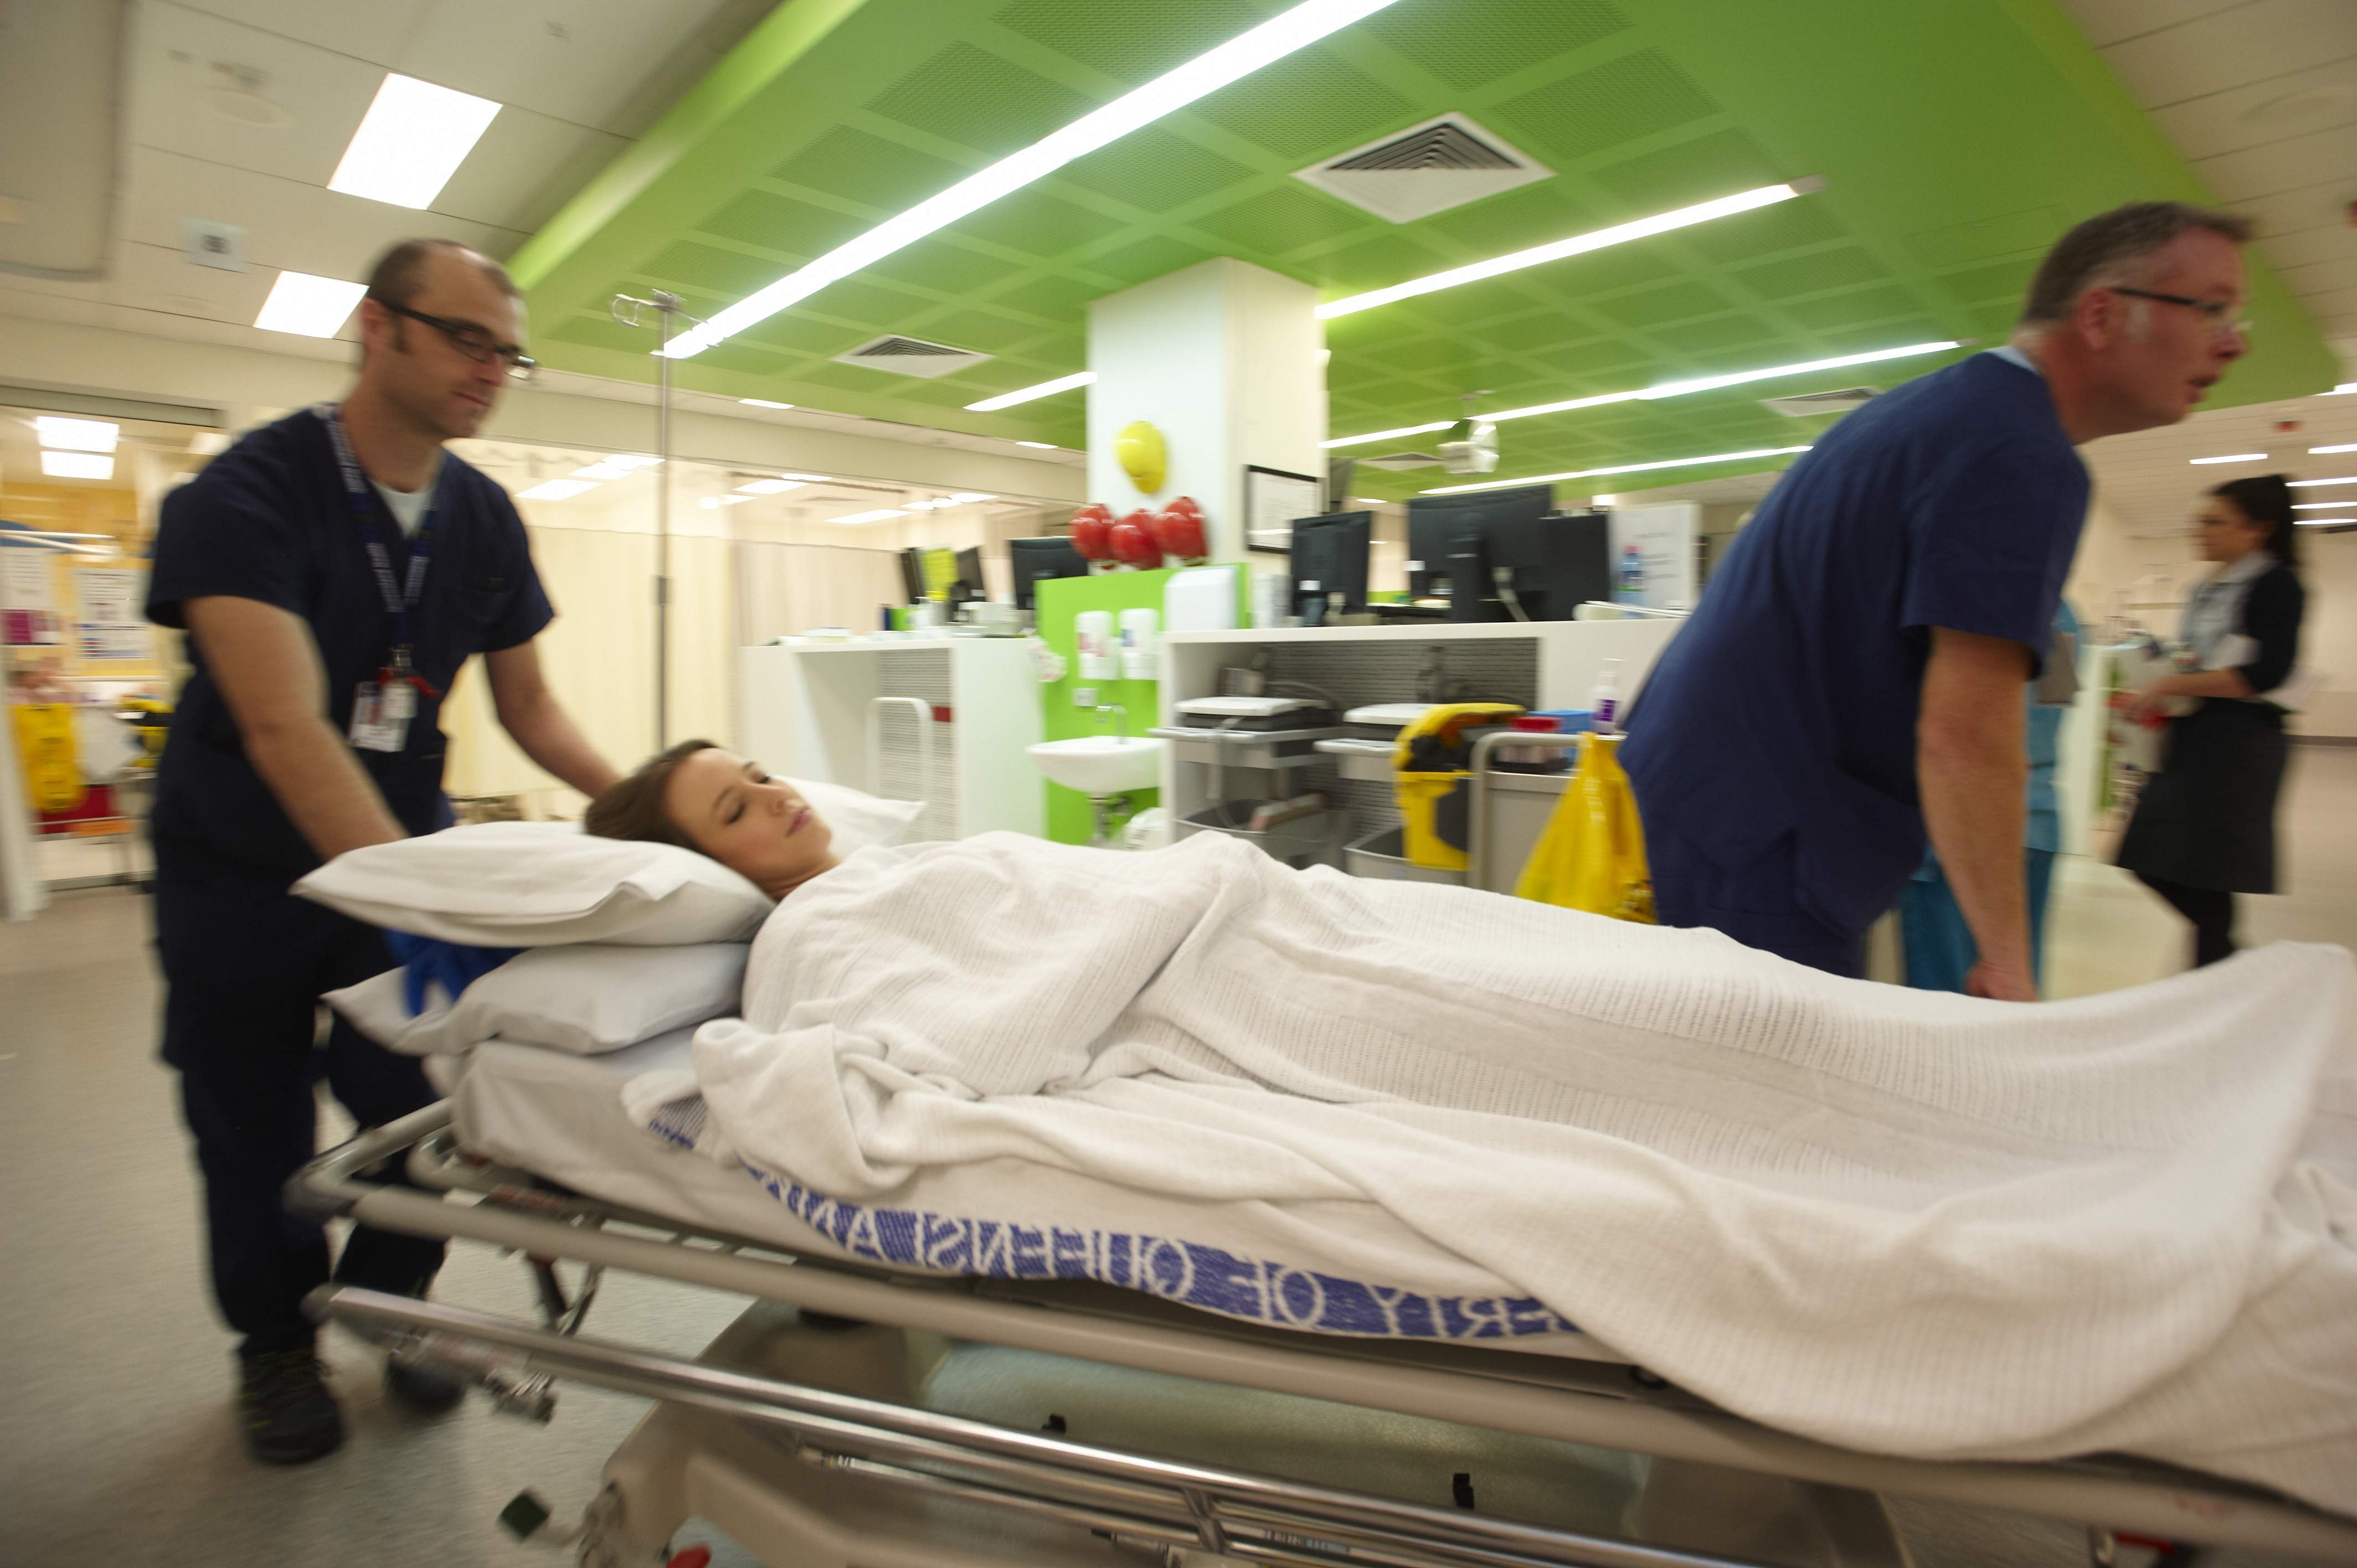 Gold Coast Health staff are ready to receive Schoolies in their hundreds starting this week.